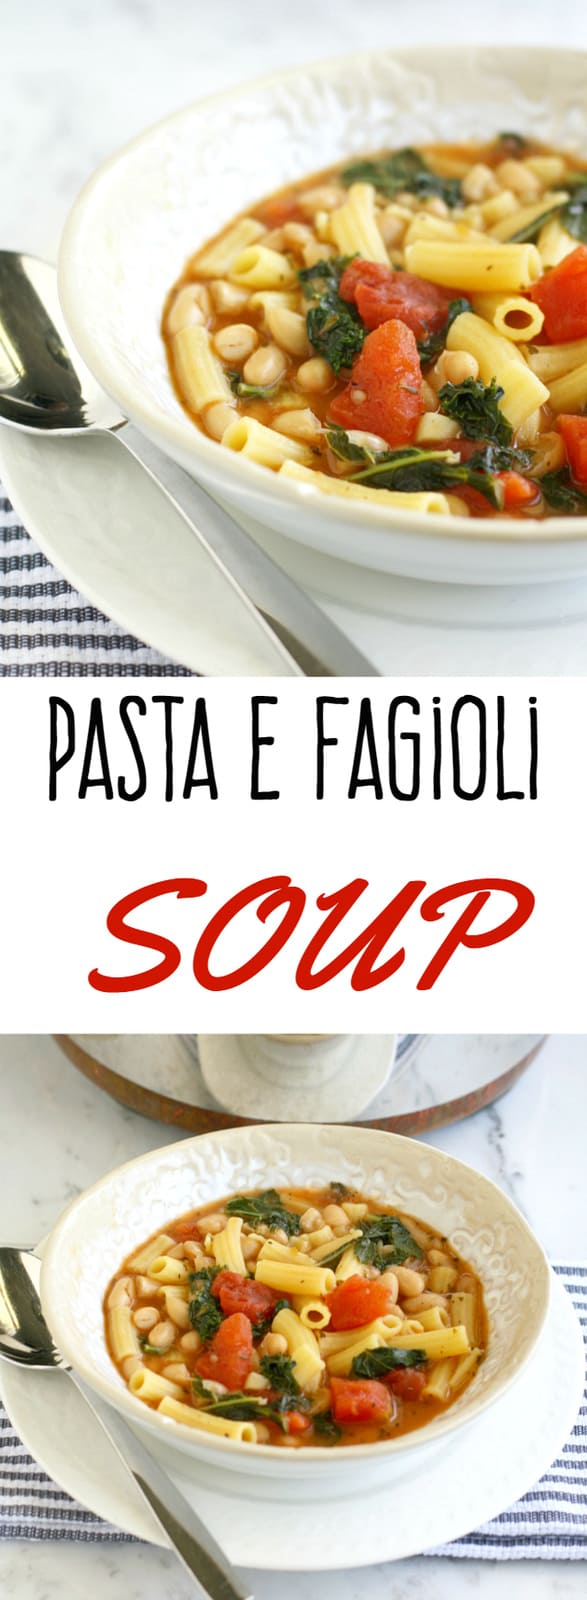 Simple, hearty, delicious pasta e fagioli soup. Perfect for a healthy weeknight meal! #vegetarian